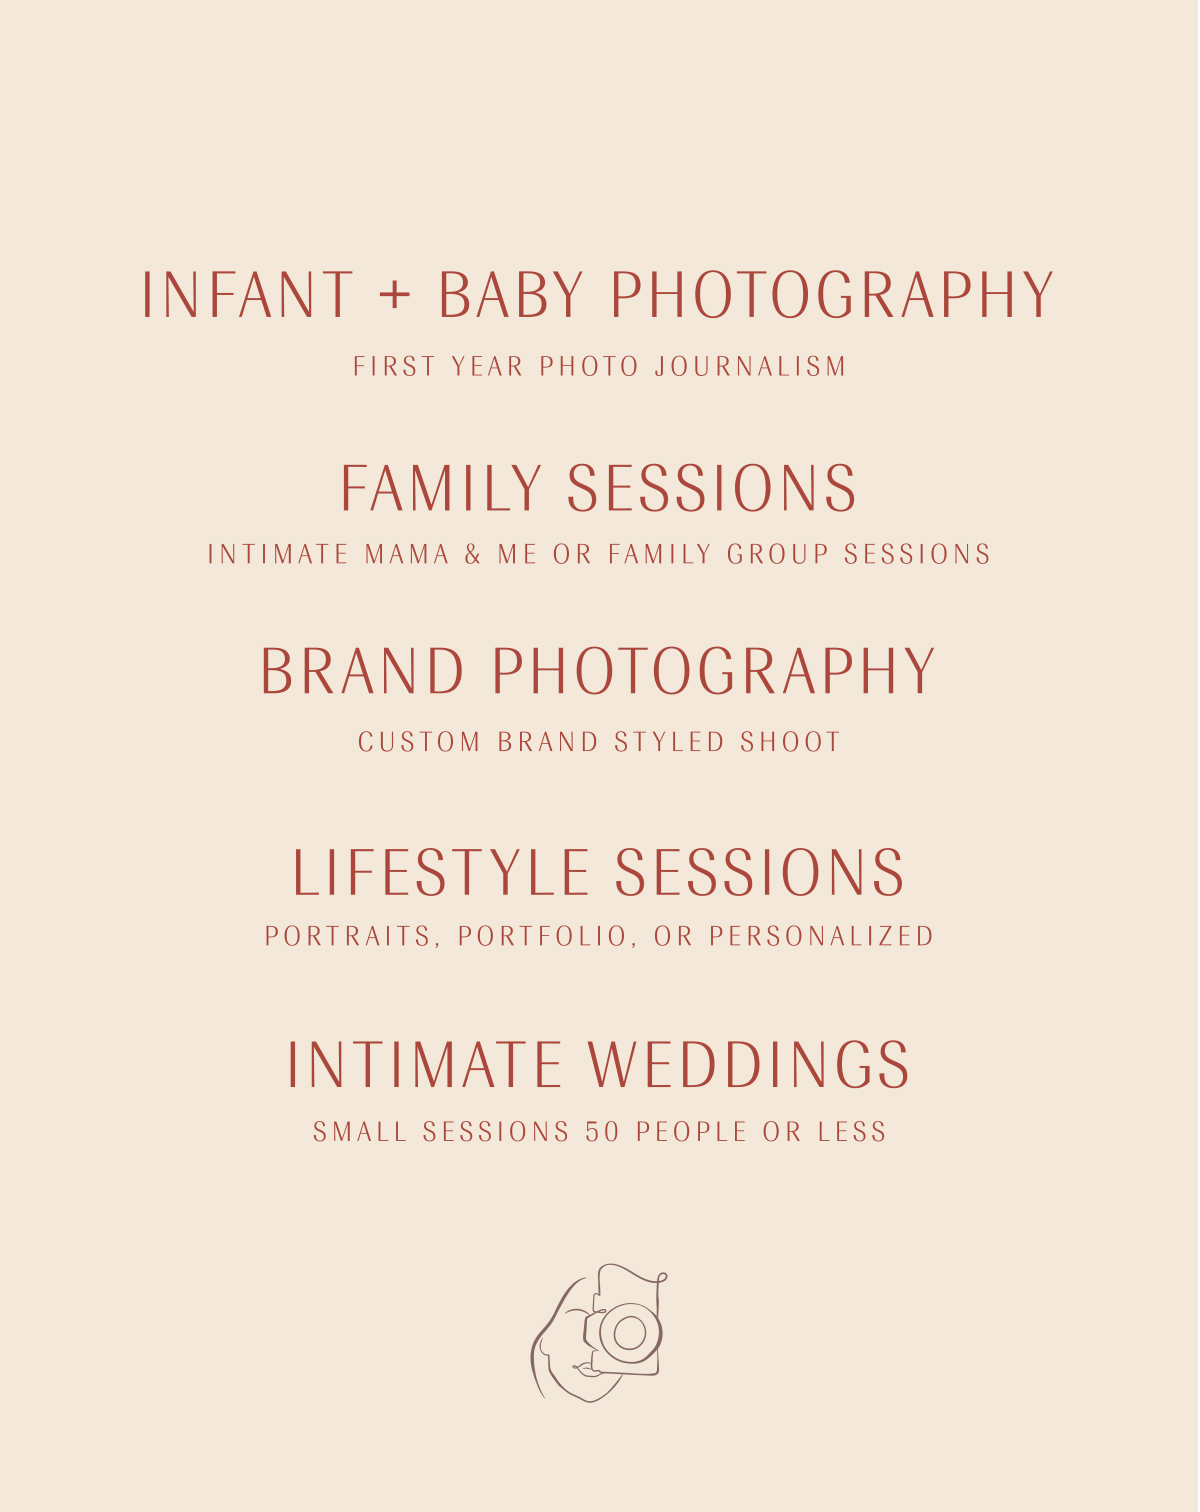 Infant + Baby Photography, Family Sessions, Brand Photography, Lifestyle Sessions, Intimate Weddings